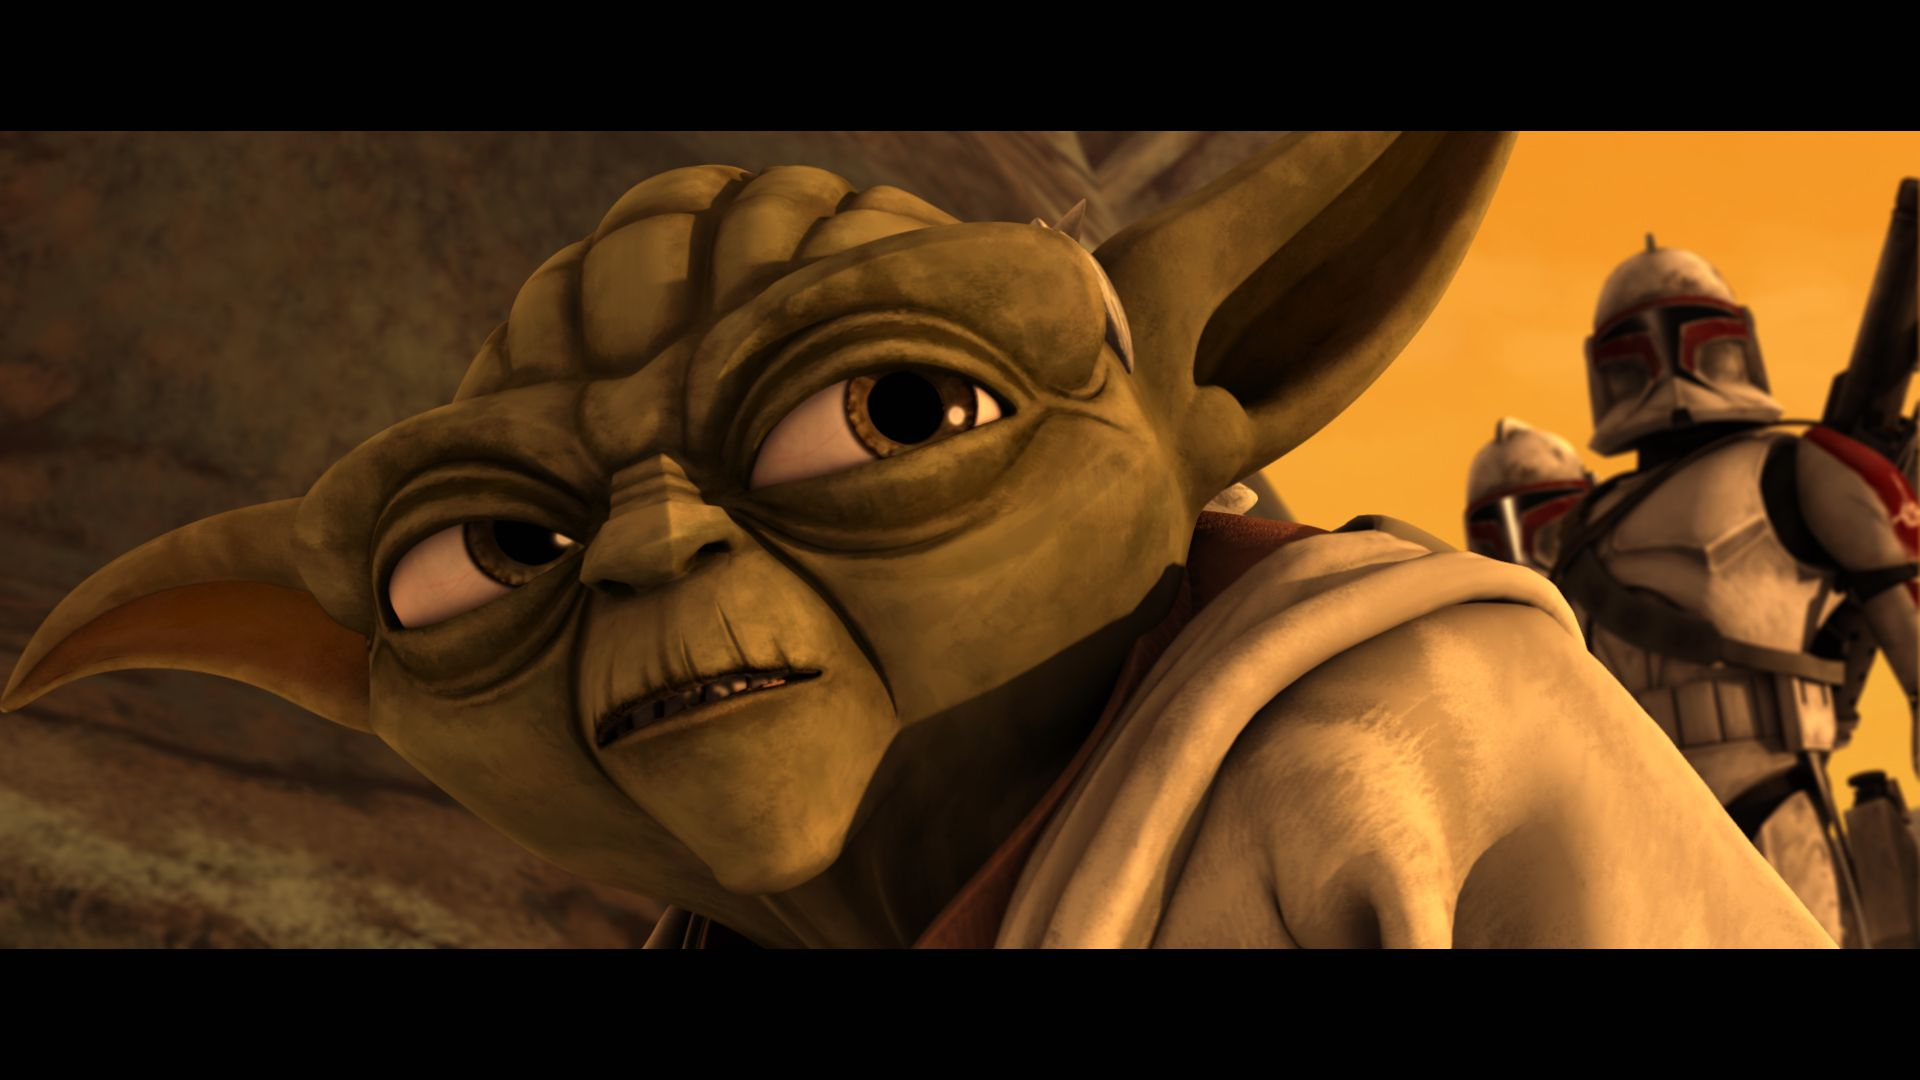 Still of Yoda looking up and to the right.